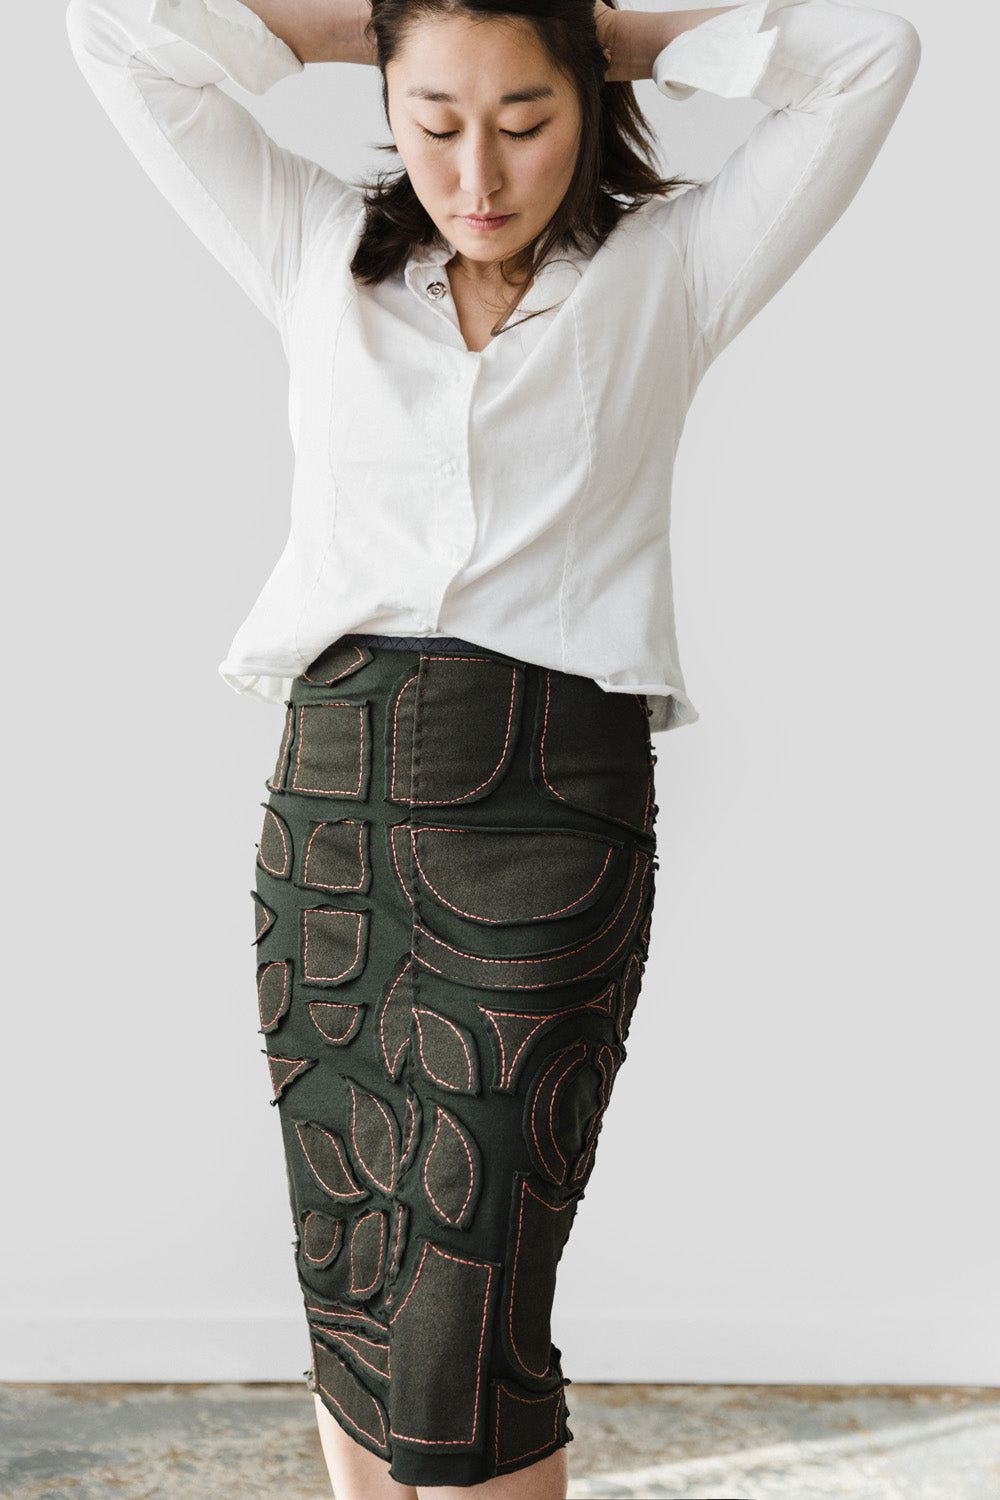 The School of Making The Pencil SKirt Kit DIY Project for Makers